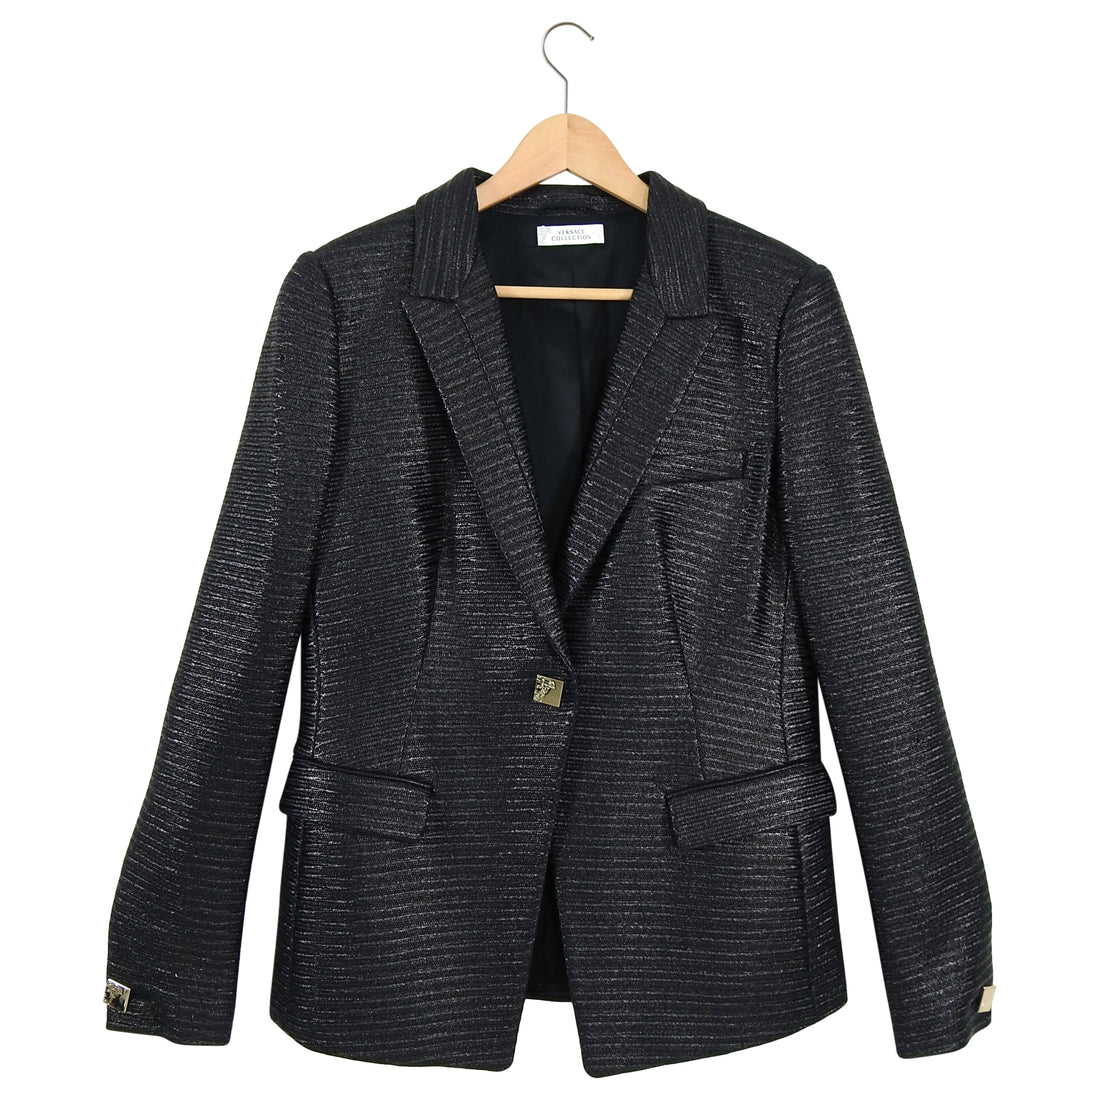 Versace Collection Black Coated Blazer Jacket - 10